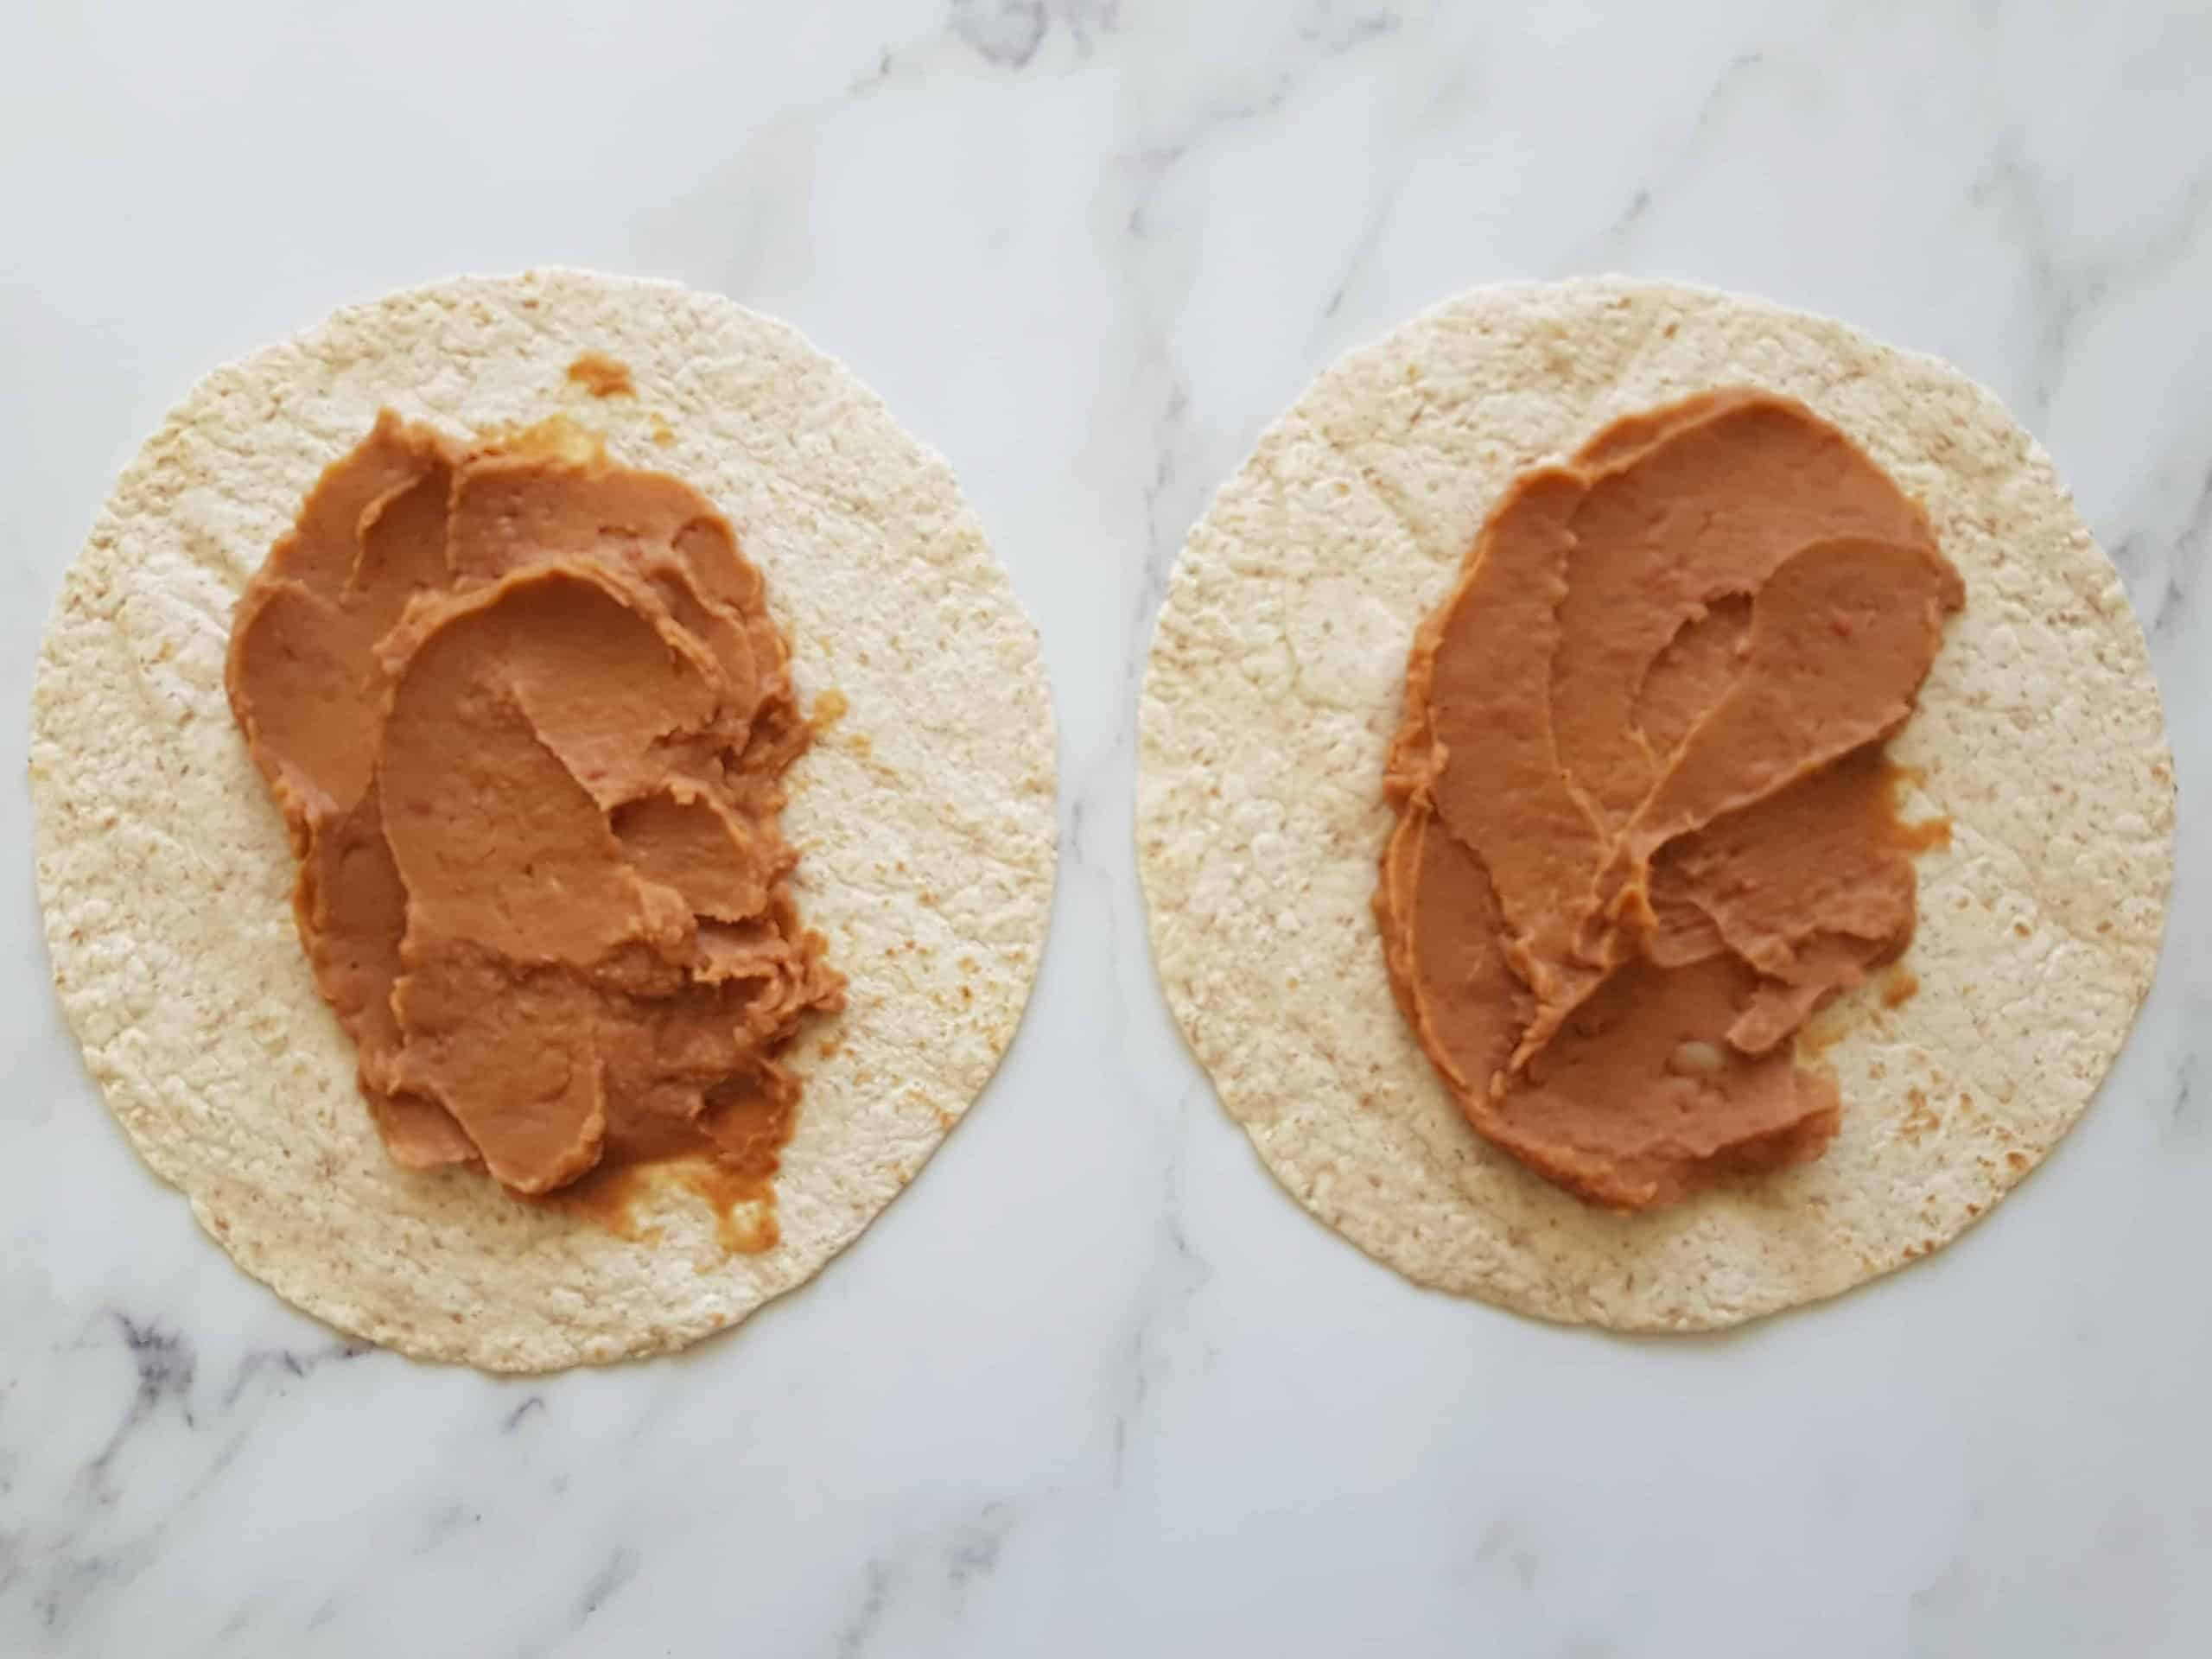 Tortilla wraps with refried beans on top.